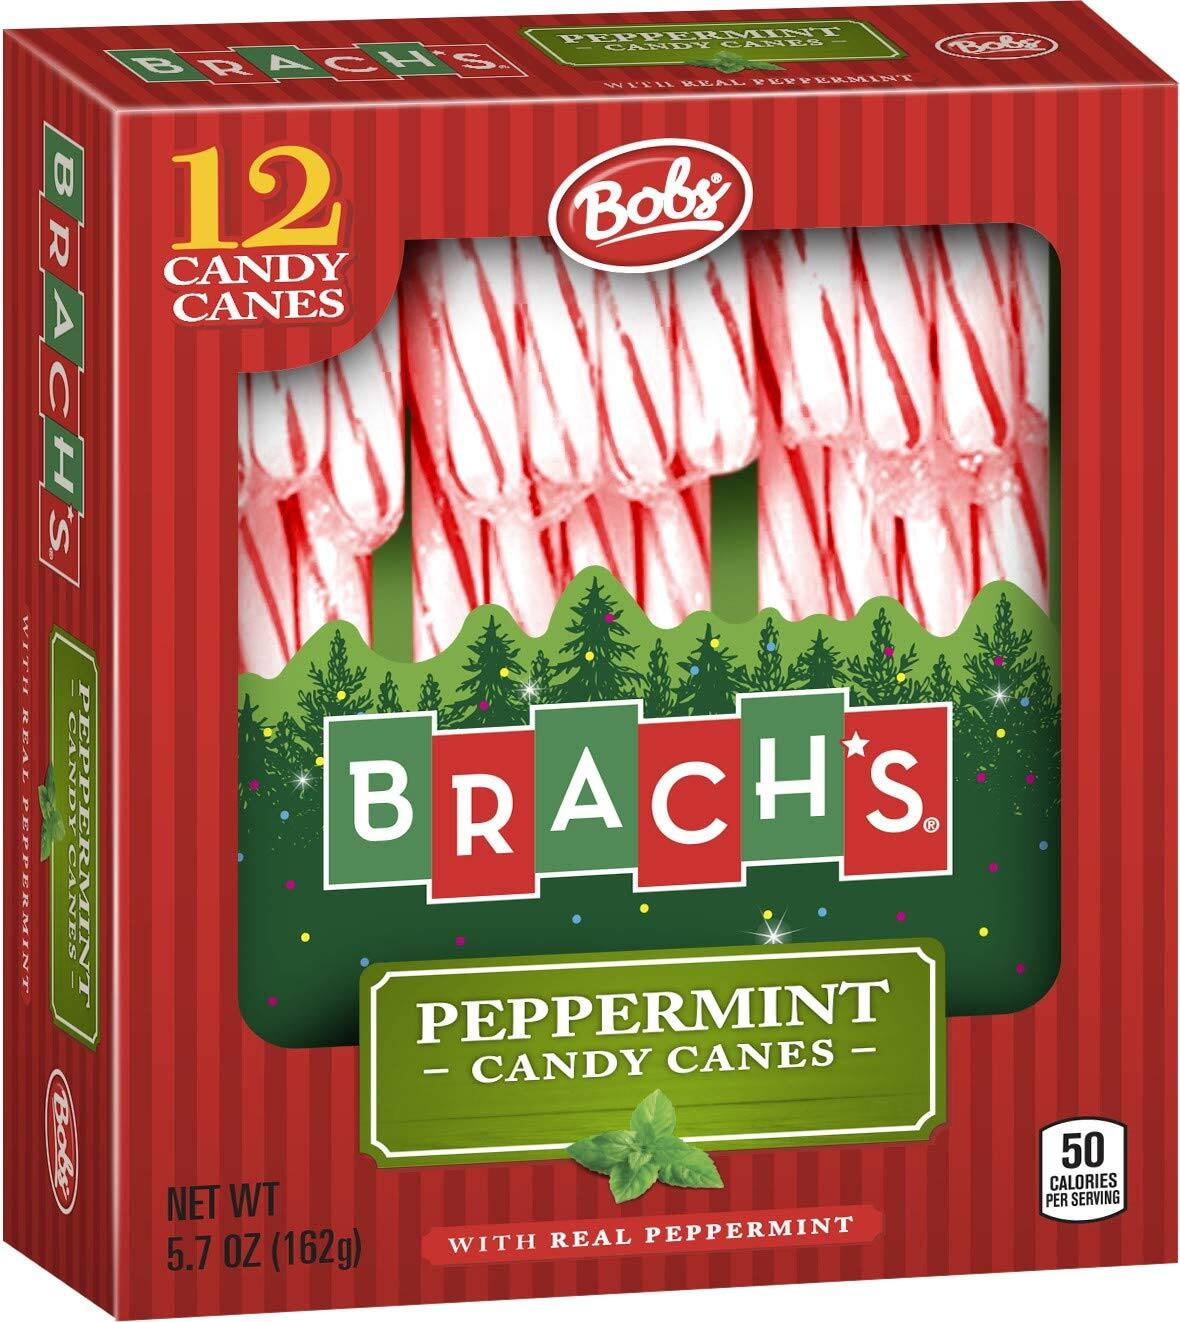 Brach's Red and White Peppermint Candy Canes, 12 ct $1